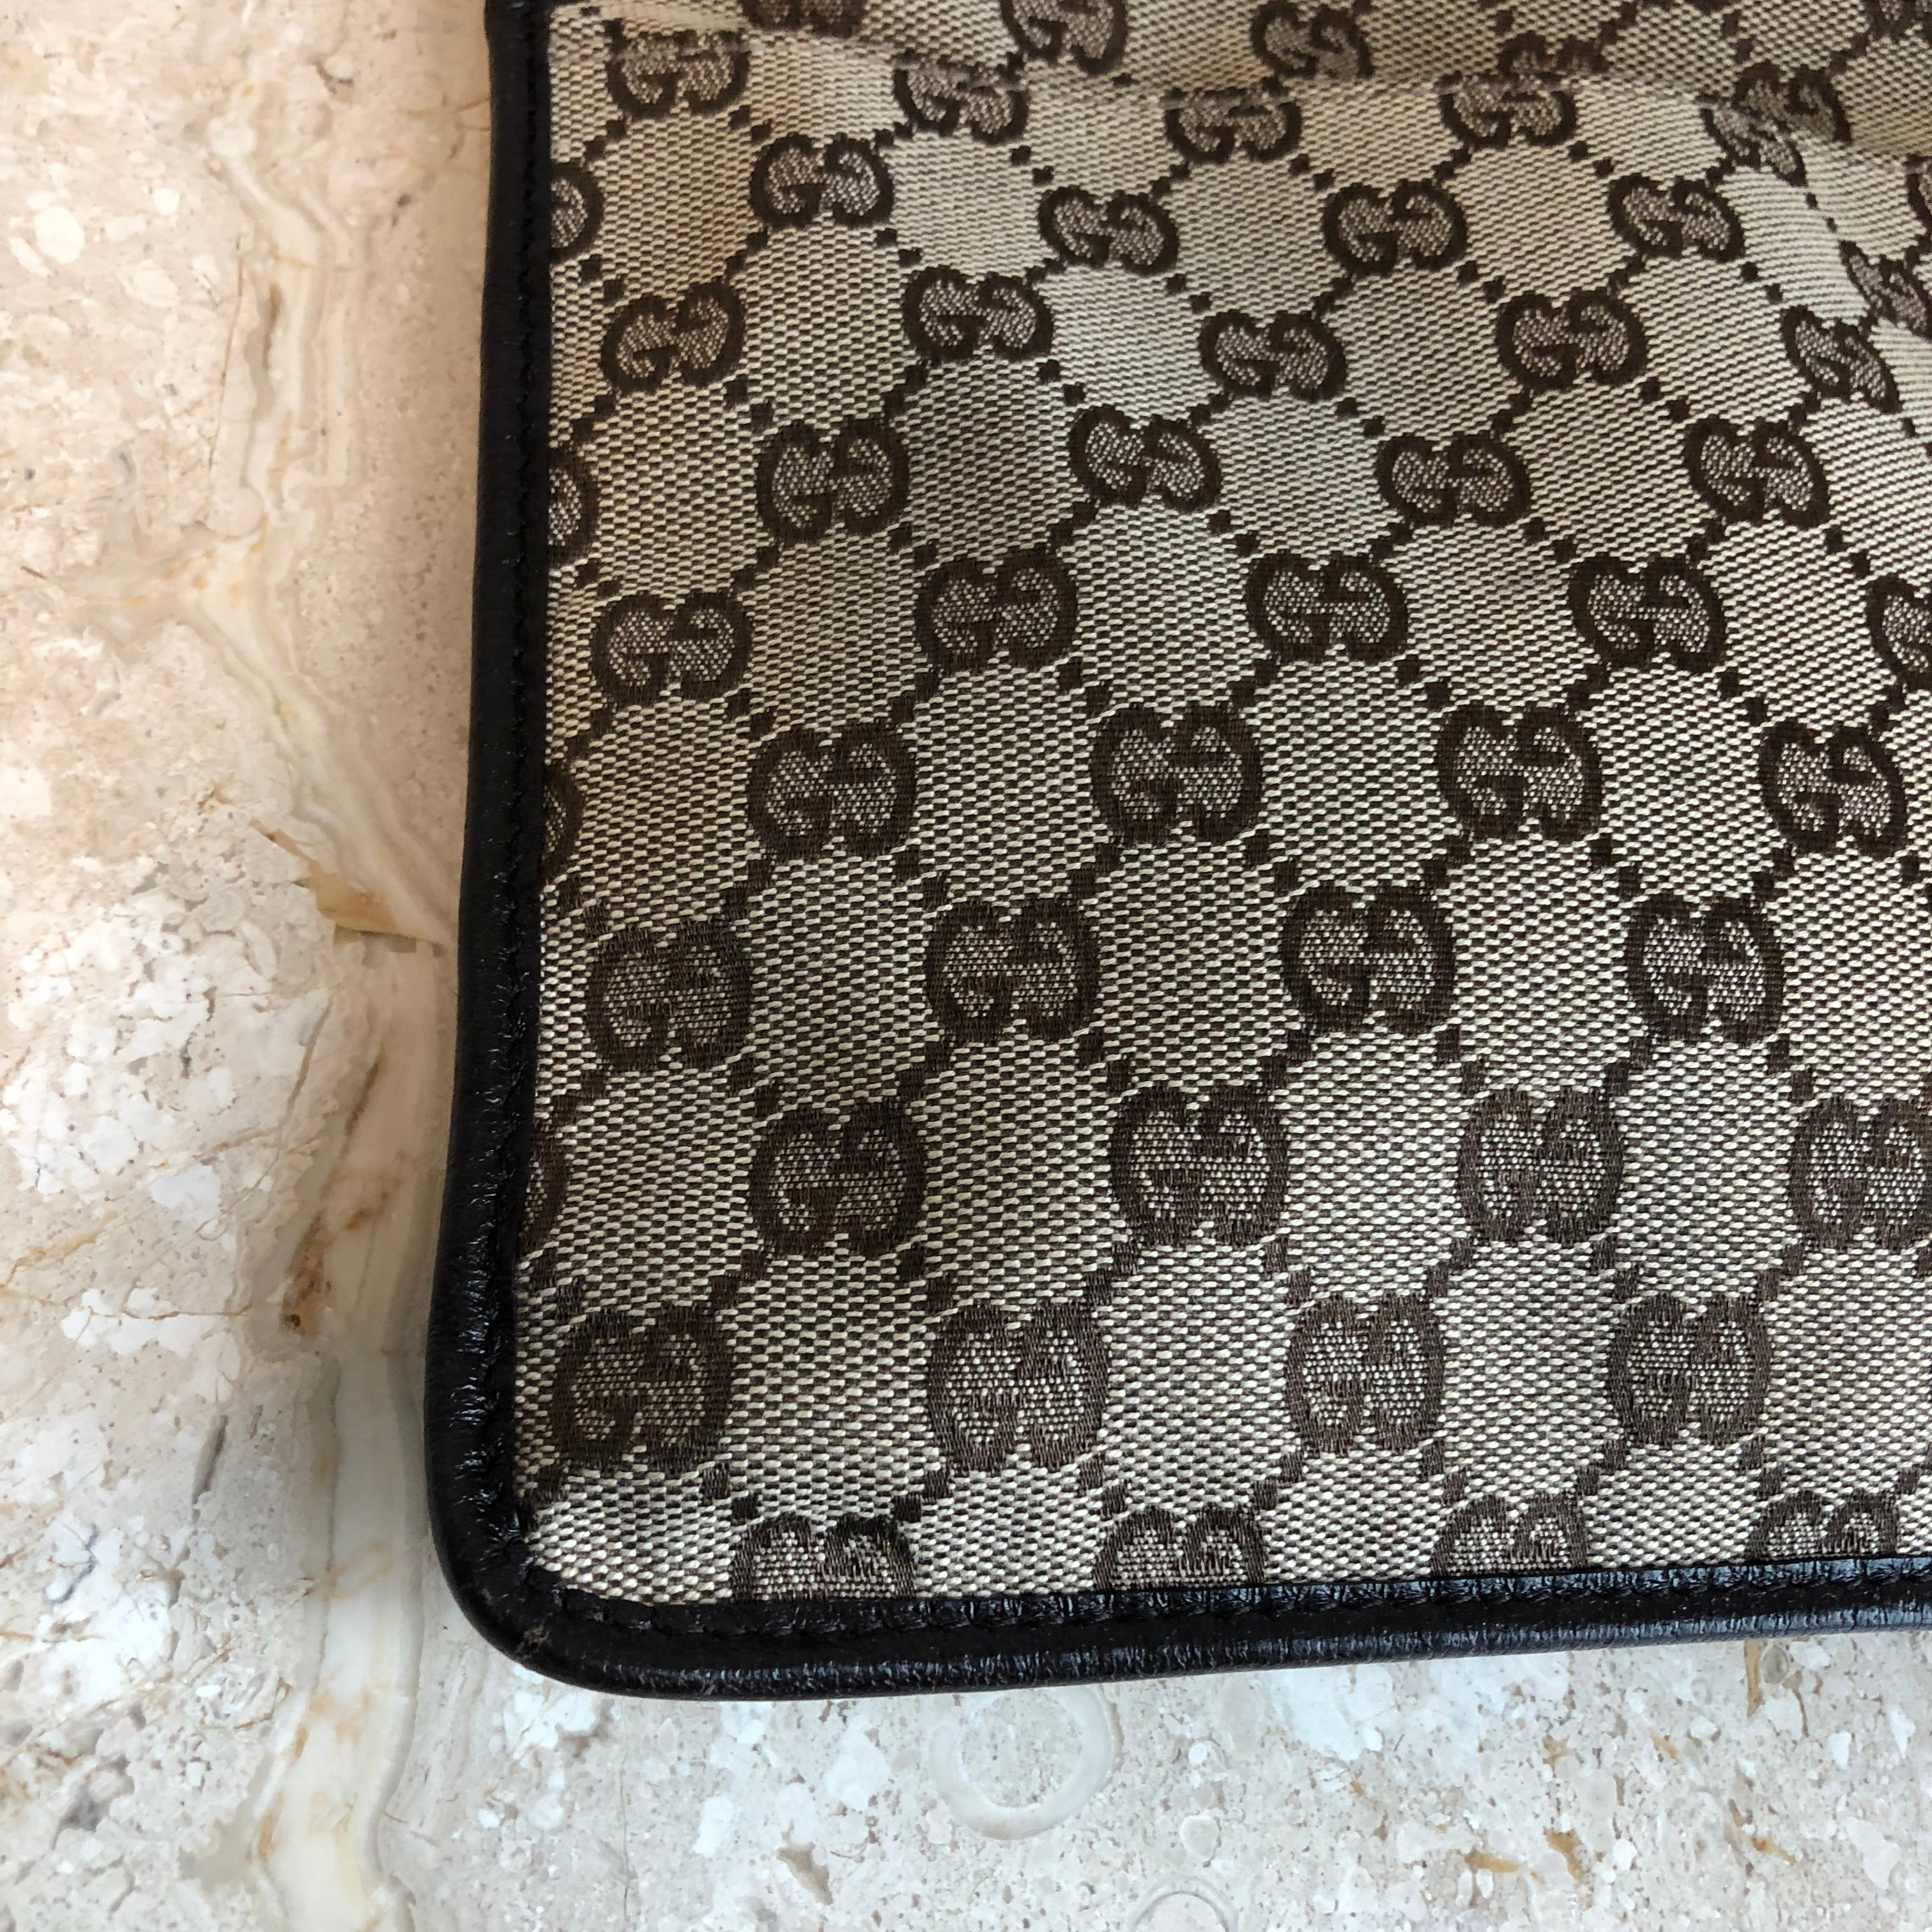 Authentic GUCCI Vintage Brown Monogram Crossbody Messenger